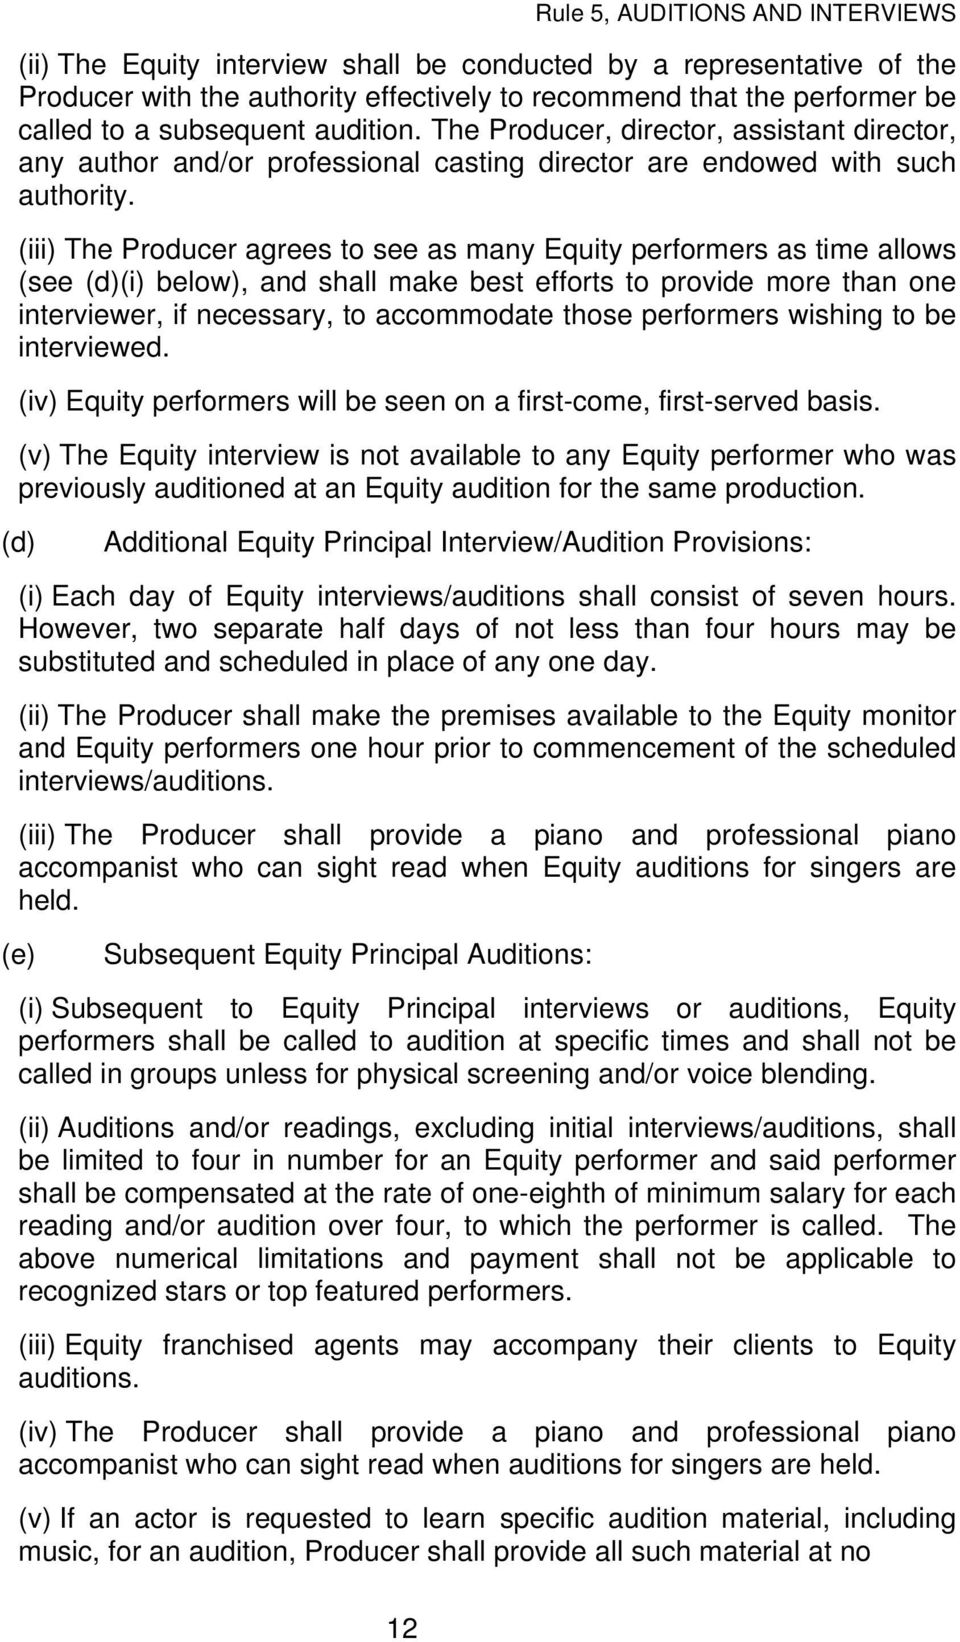 (iii) The Producer agrees to see as many Equity performers as time allows (see (d)(i) below), and shall make best efforts to provide more than one interviewer, if necessary, to accommodate those